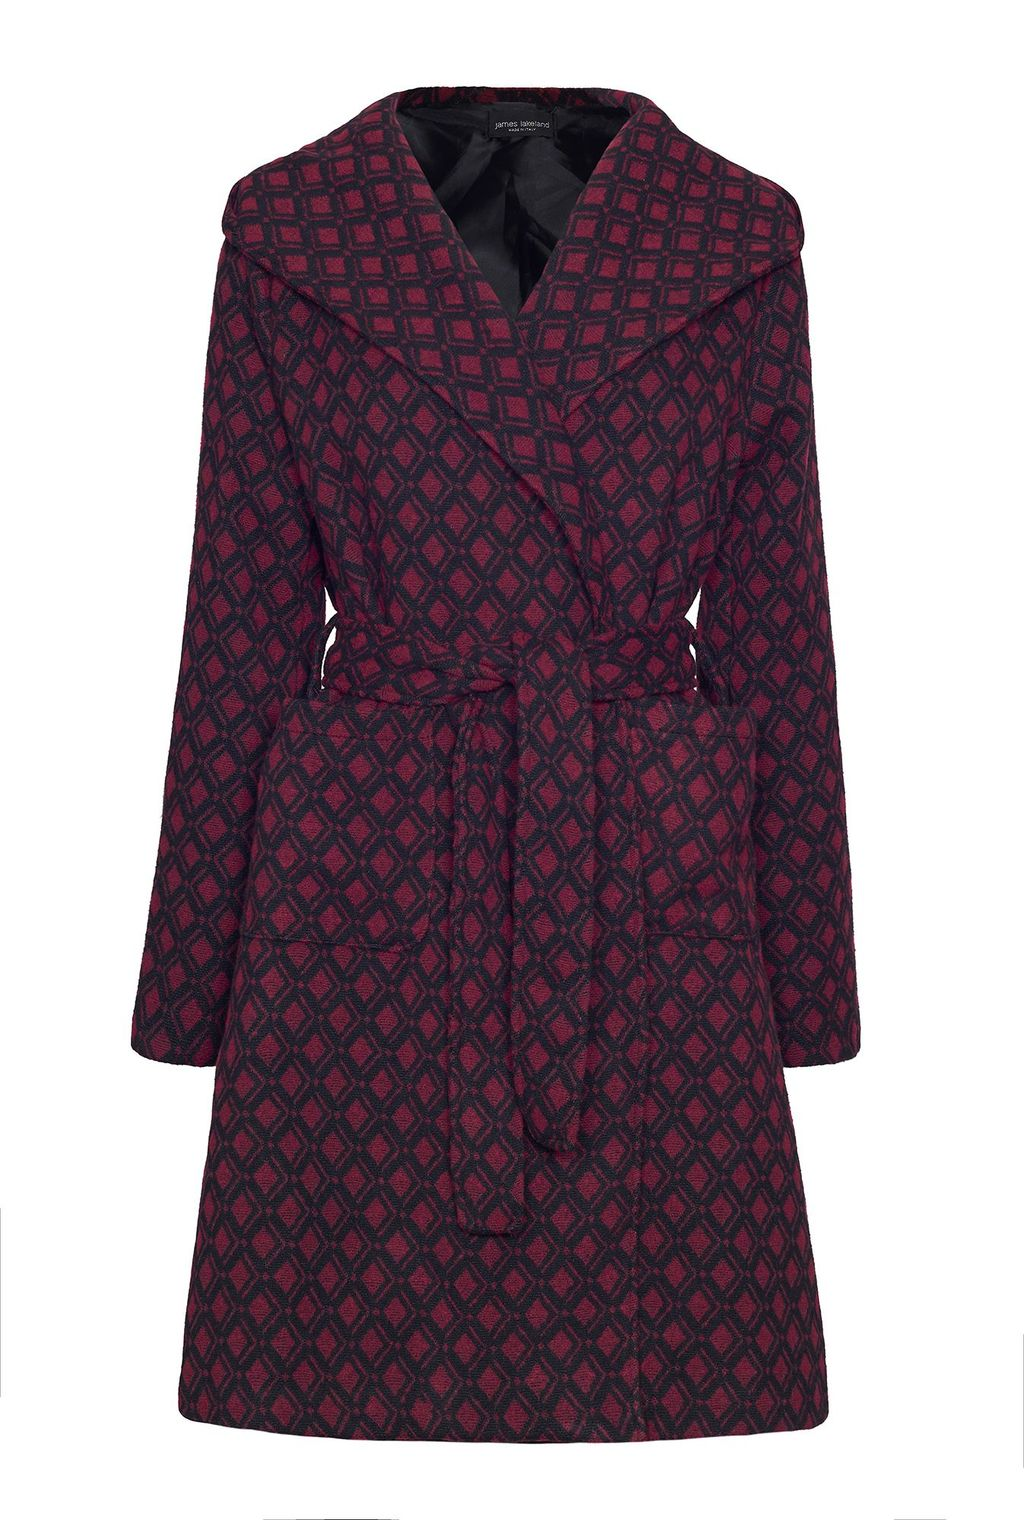 Pattern Coat With Hood, Red - collar: wide lapels; style: wrap around; predominant colour: purple; occasions: casual, creative work; fit: tailored/fitted; fibres: wool - mix; length: below the knee; waist detail: belted waist/tie at waist/drawstring; sleeve length: long sleeve; sleeve style: standard; collar break: medium; pattern type: fabric; pattern: patterned/print; texture group: woven bulky/heavy; pattern size: big & busy (top); season: a/w 2015